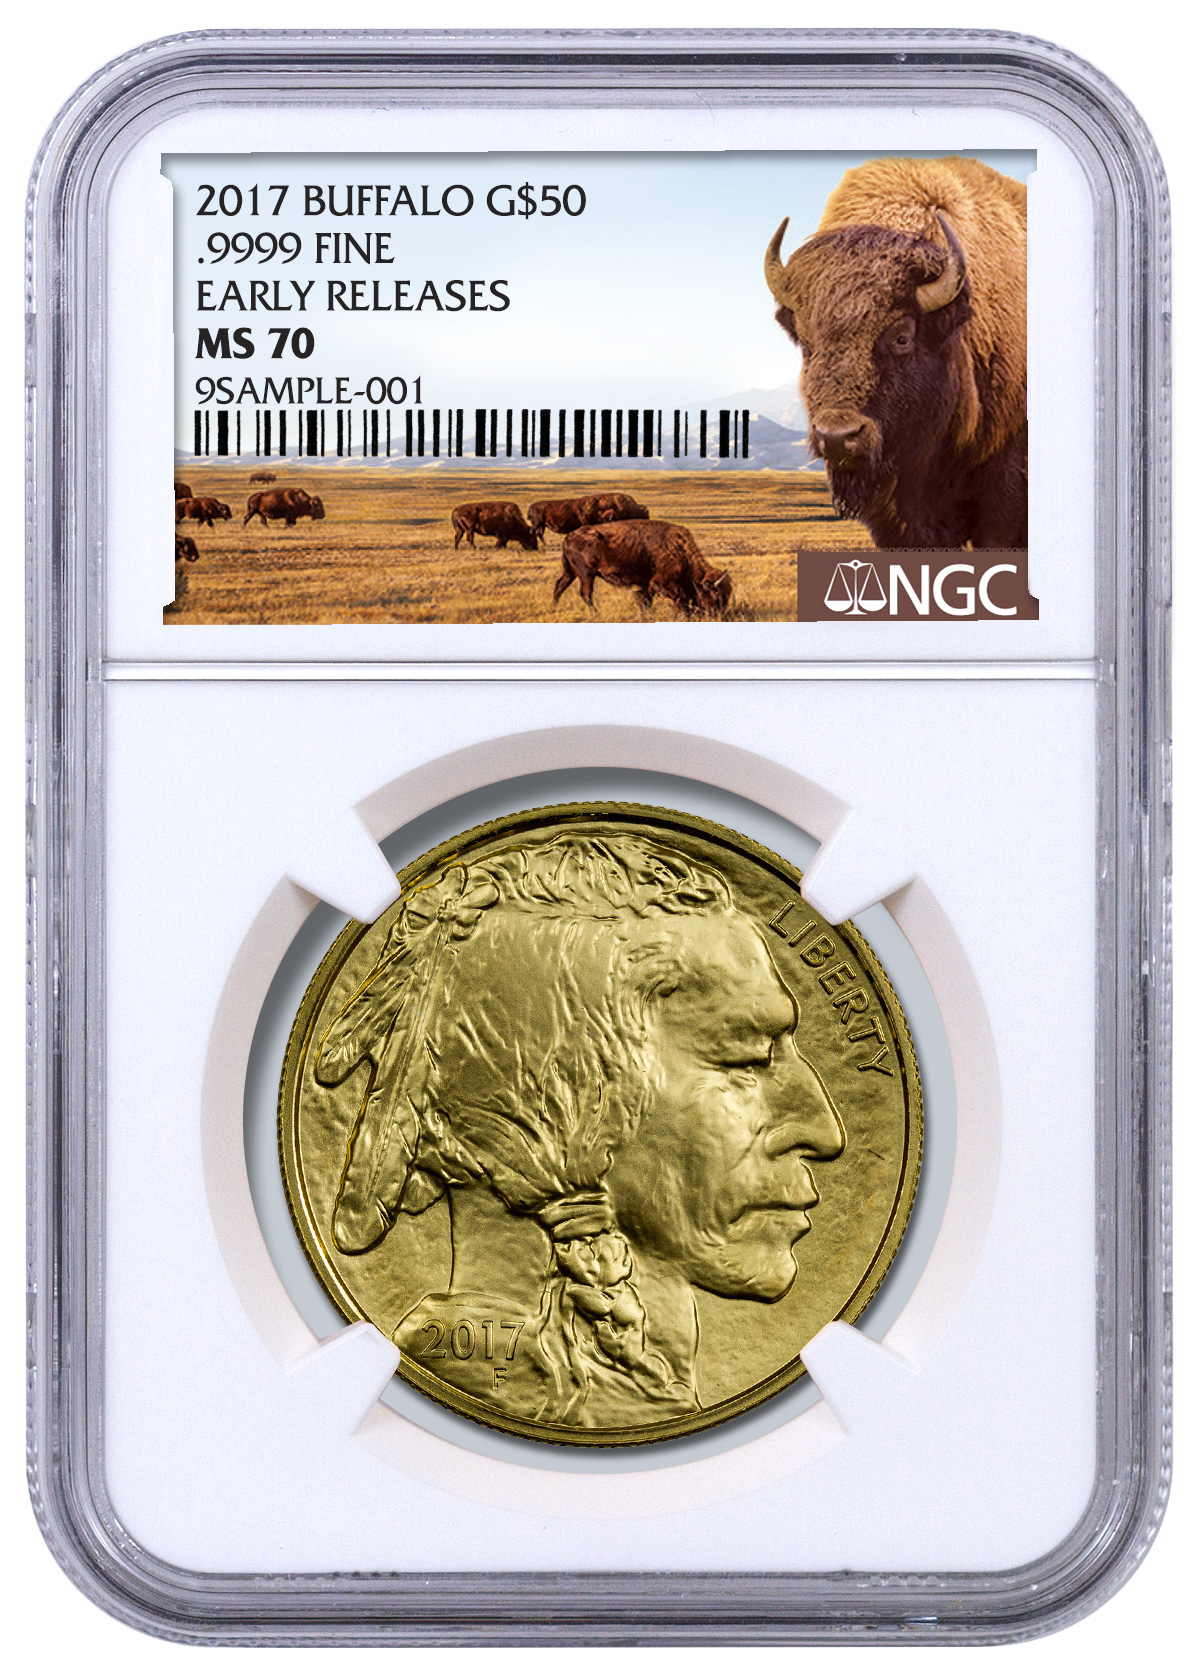 2017 1 Oz Gold Buffalo 50 Coin Ngc Ms70 Er Buffalo Label